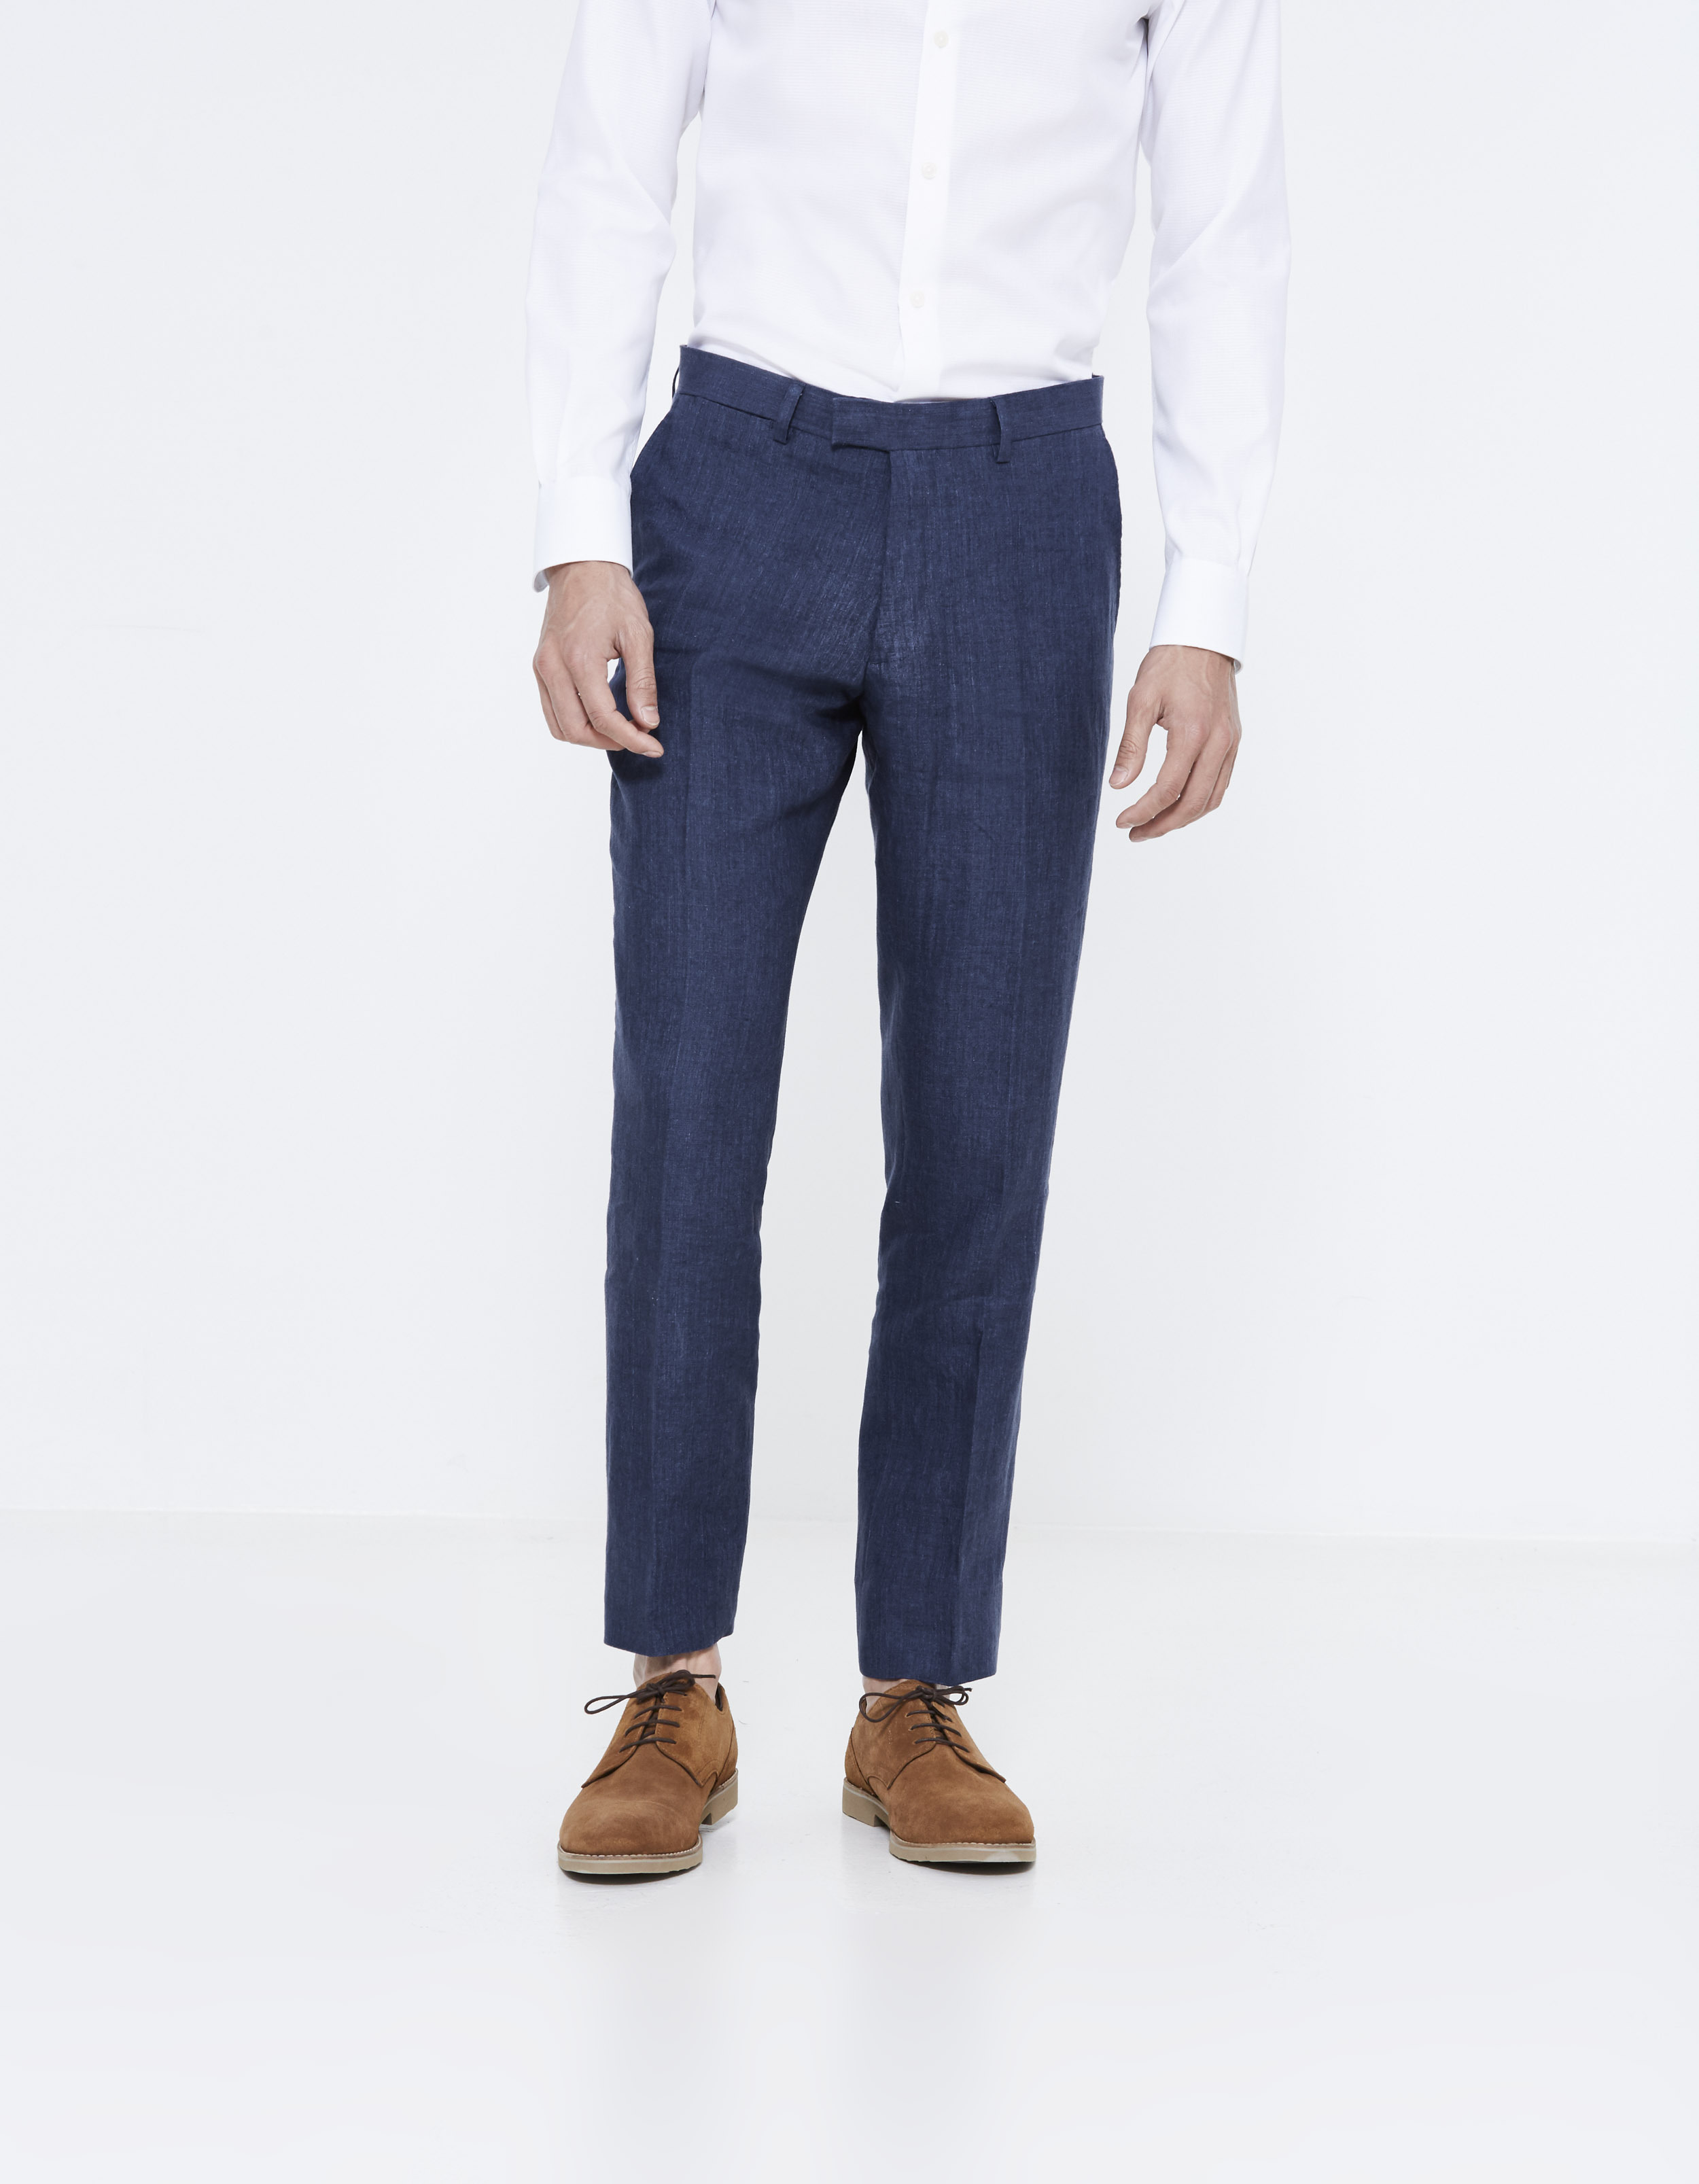 cc8a36070f387 pantalon de costume slim en lin - LOWEDDING INDIGO - Vue de face - Celio  France